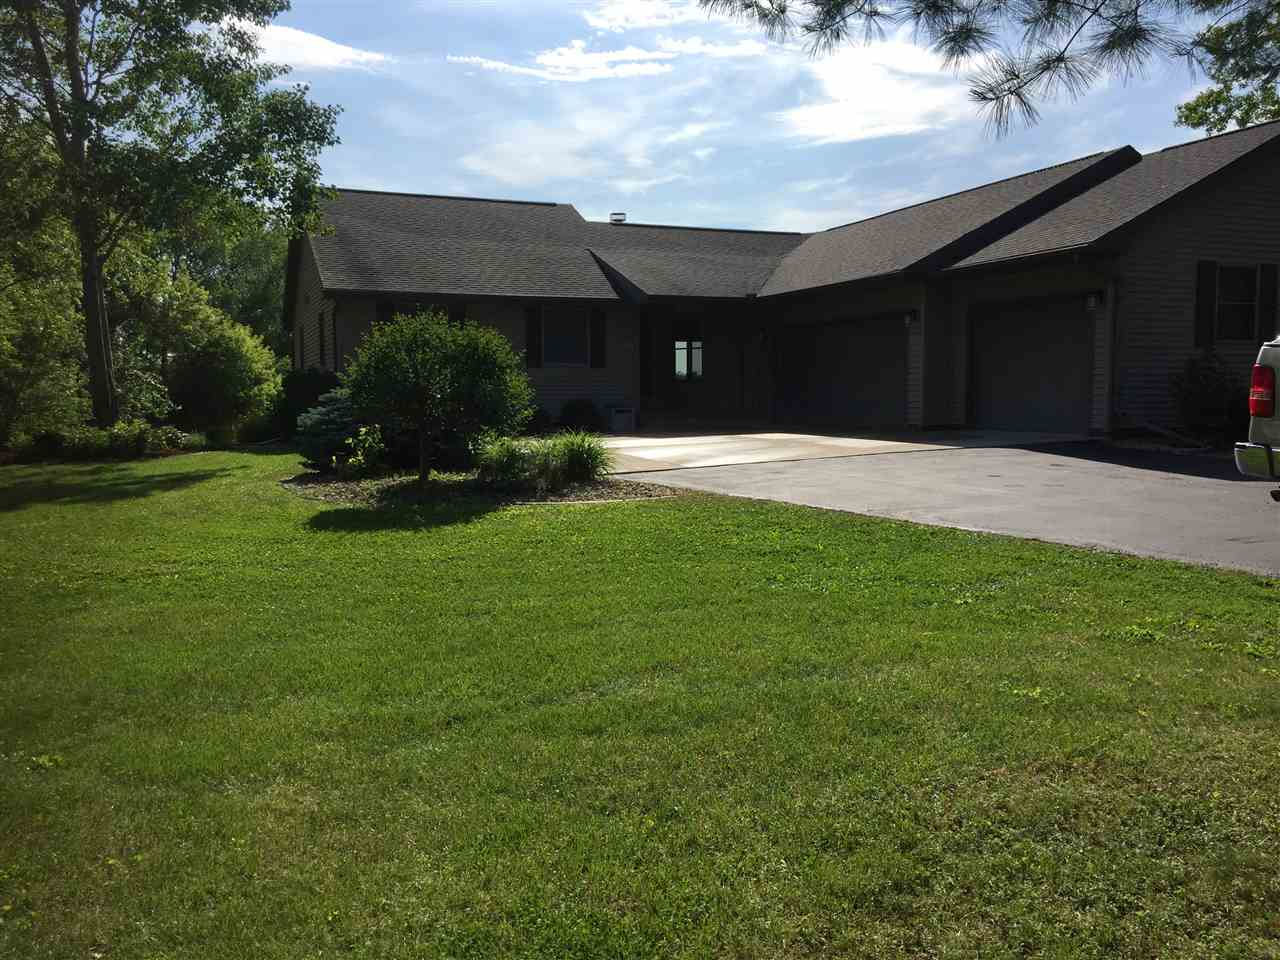 7811 N Territorial Rd, Union, WI 53536